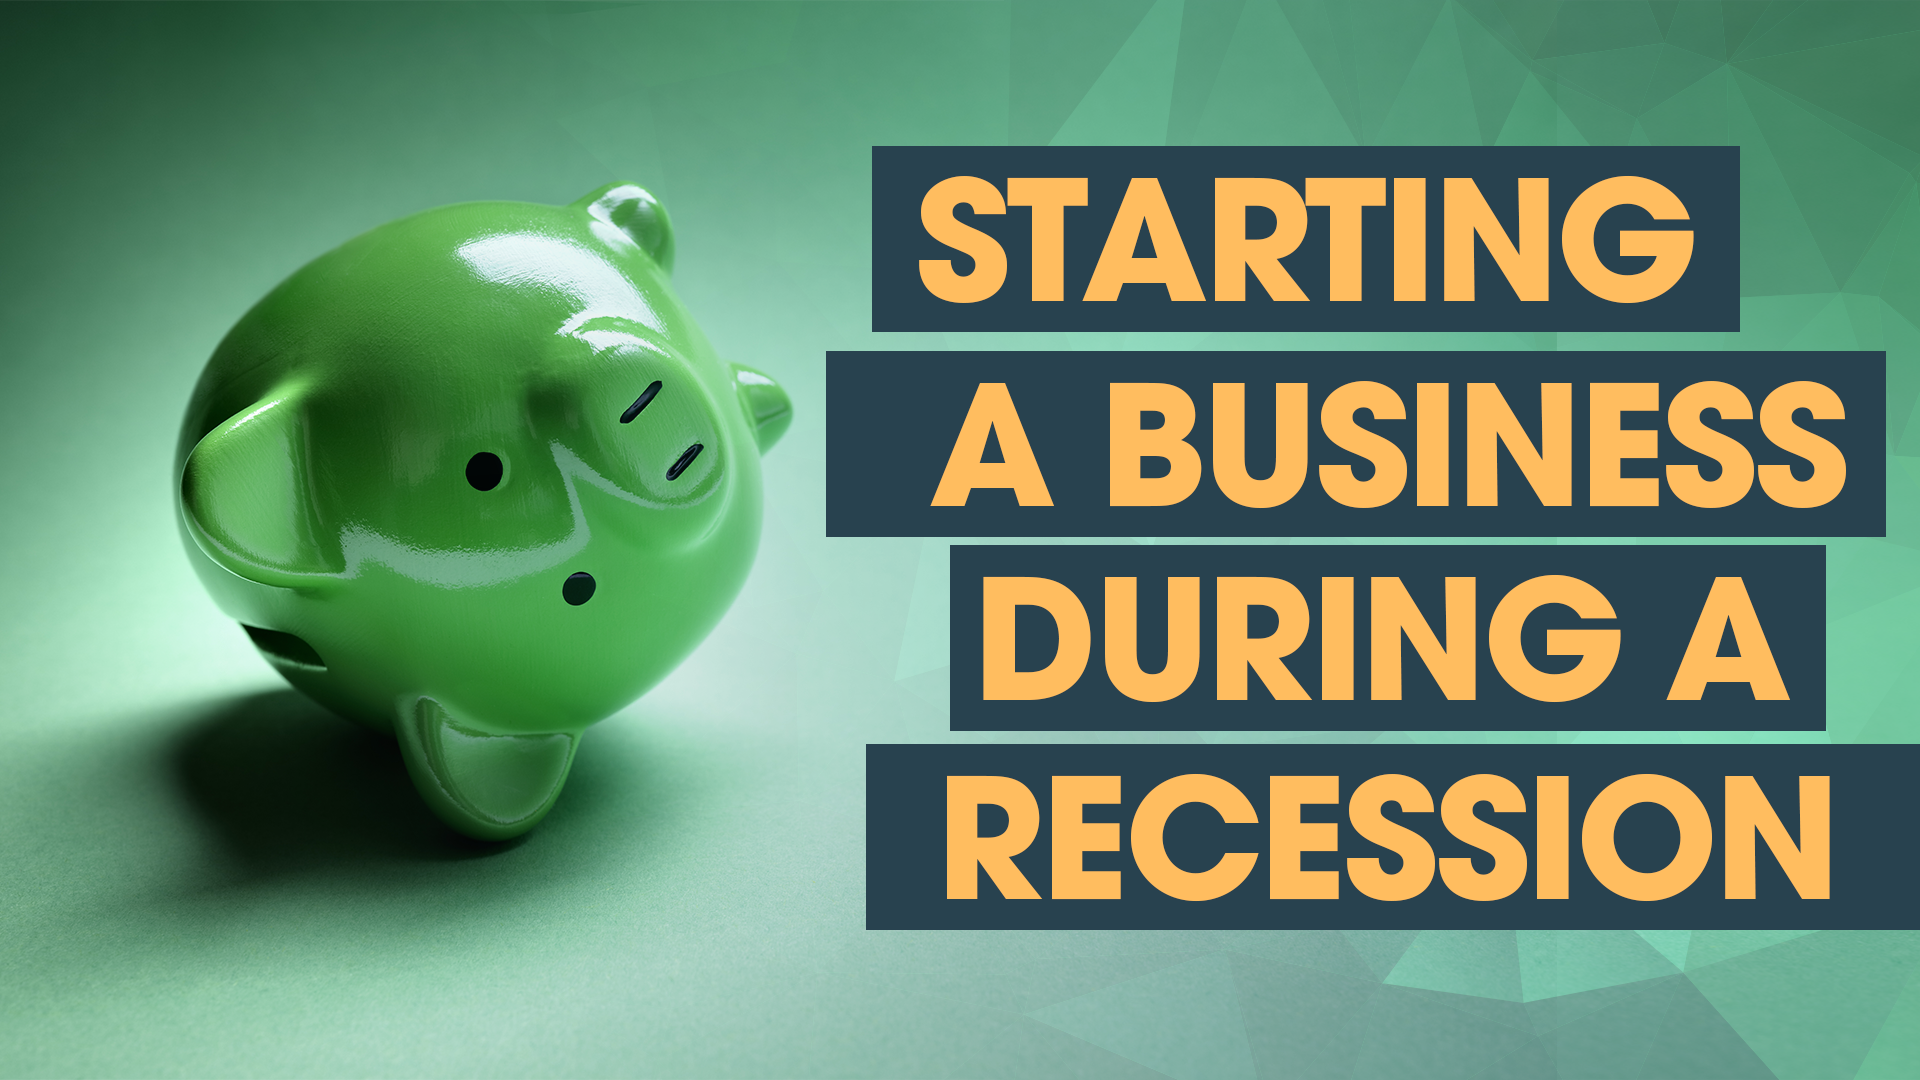 Why Start a Business During a Recession